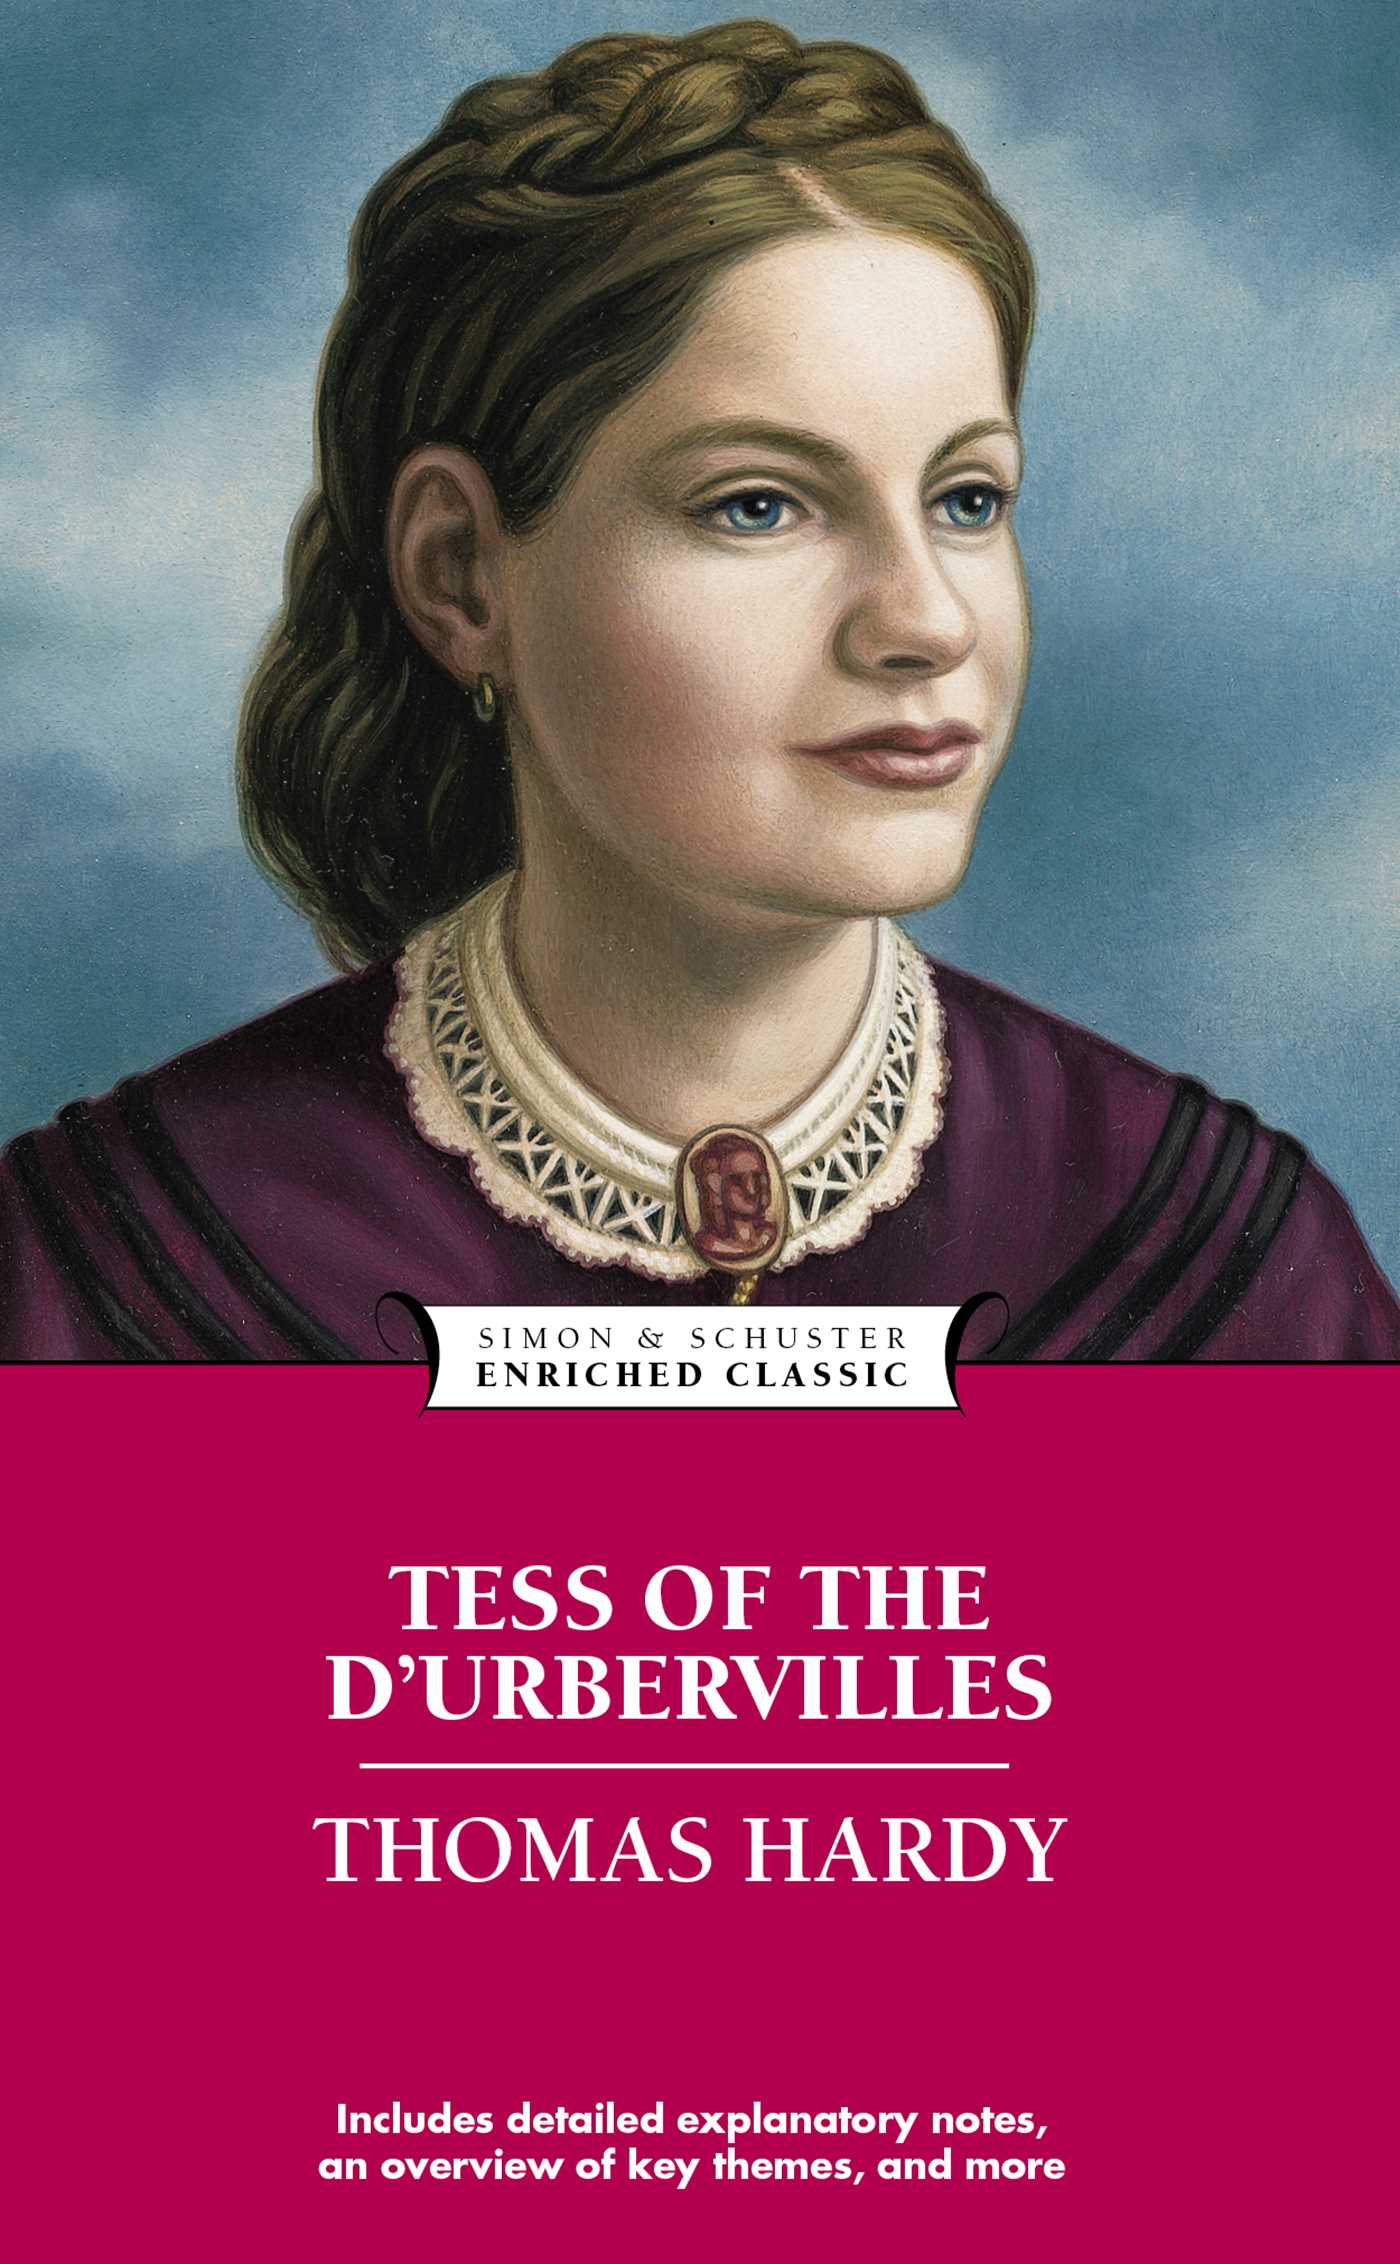 Tess-of-the-durbervilles-9781416523673_hr